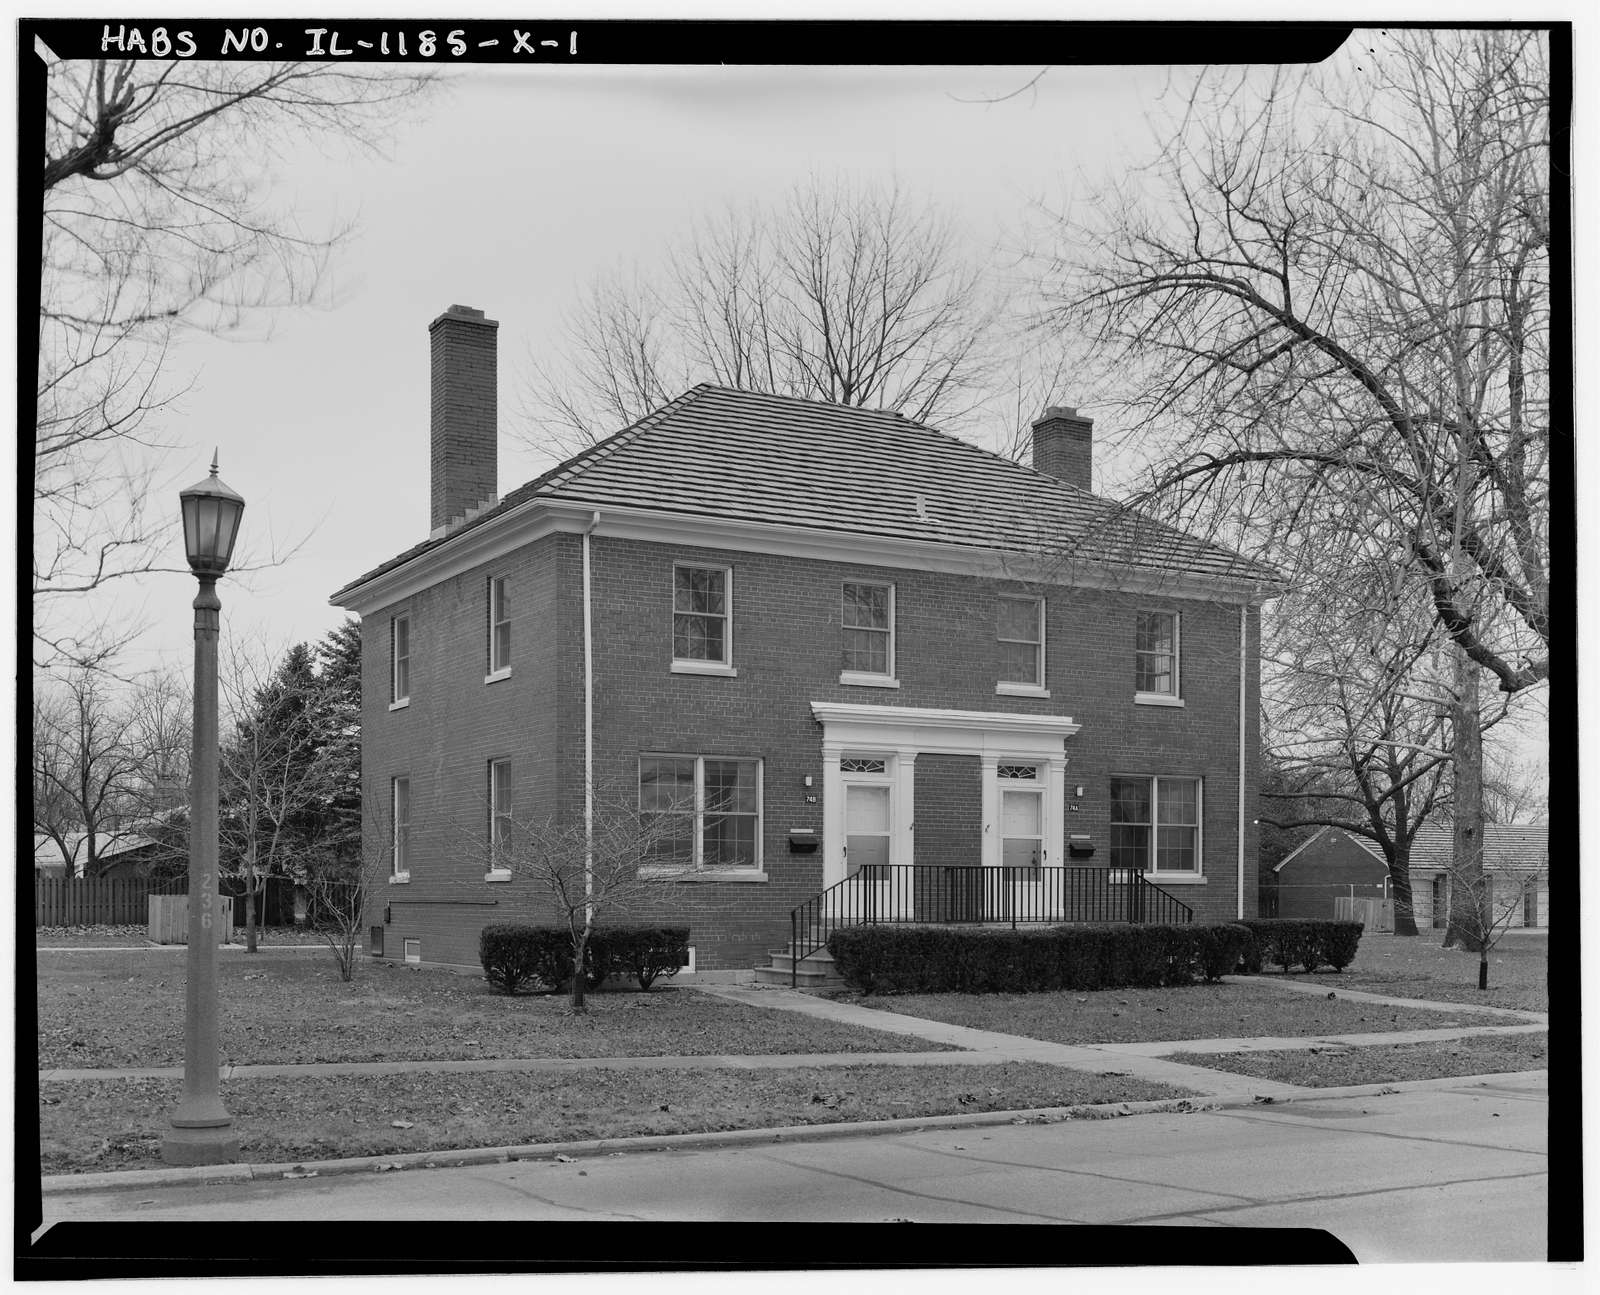 Chanute Air Force Base, Non-Commissioned Officer Housing, Curtiss Street, Rantoul, Champaign County, IL